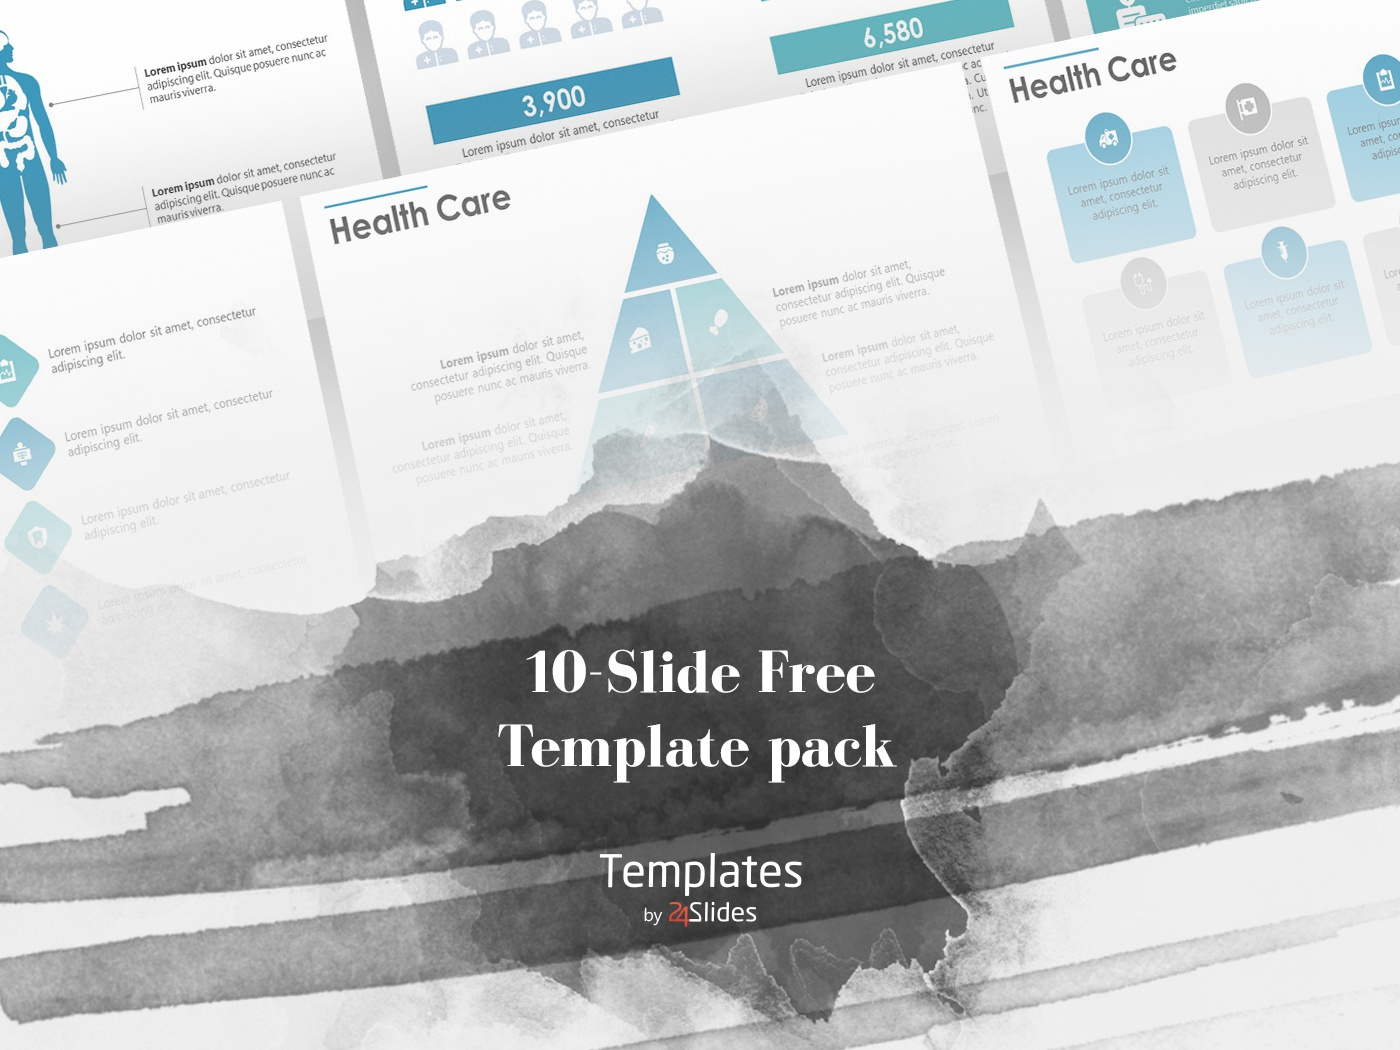 Health Care Presentation Template Free Download By